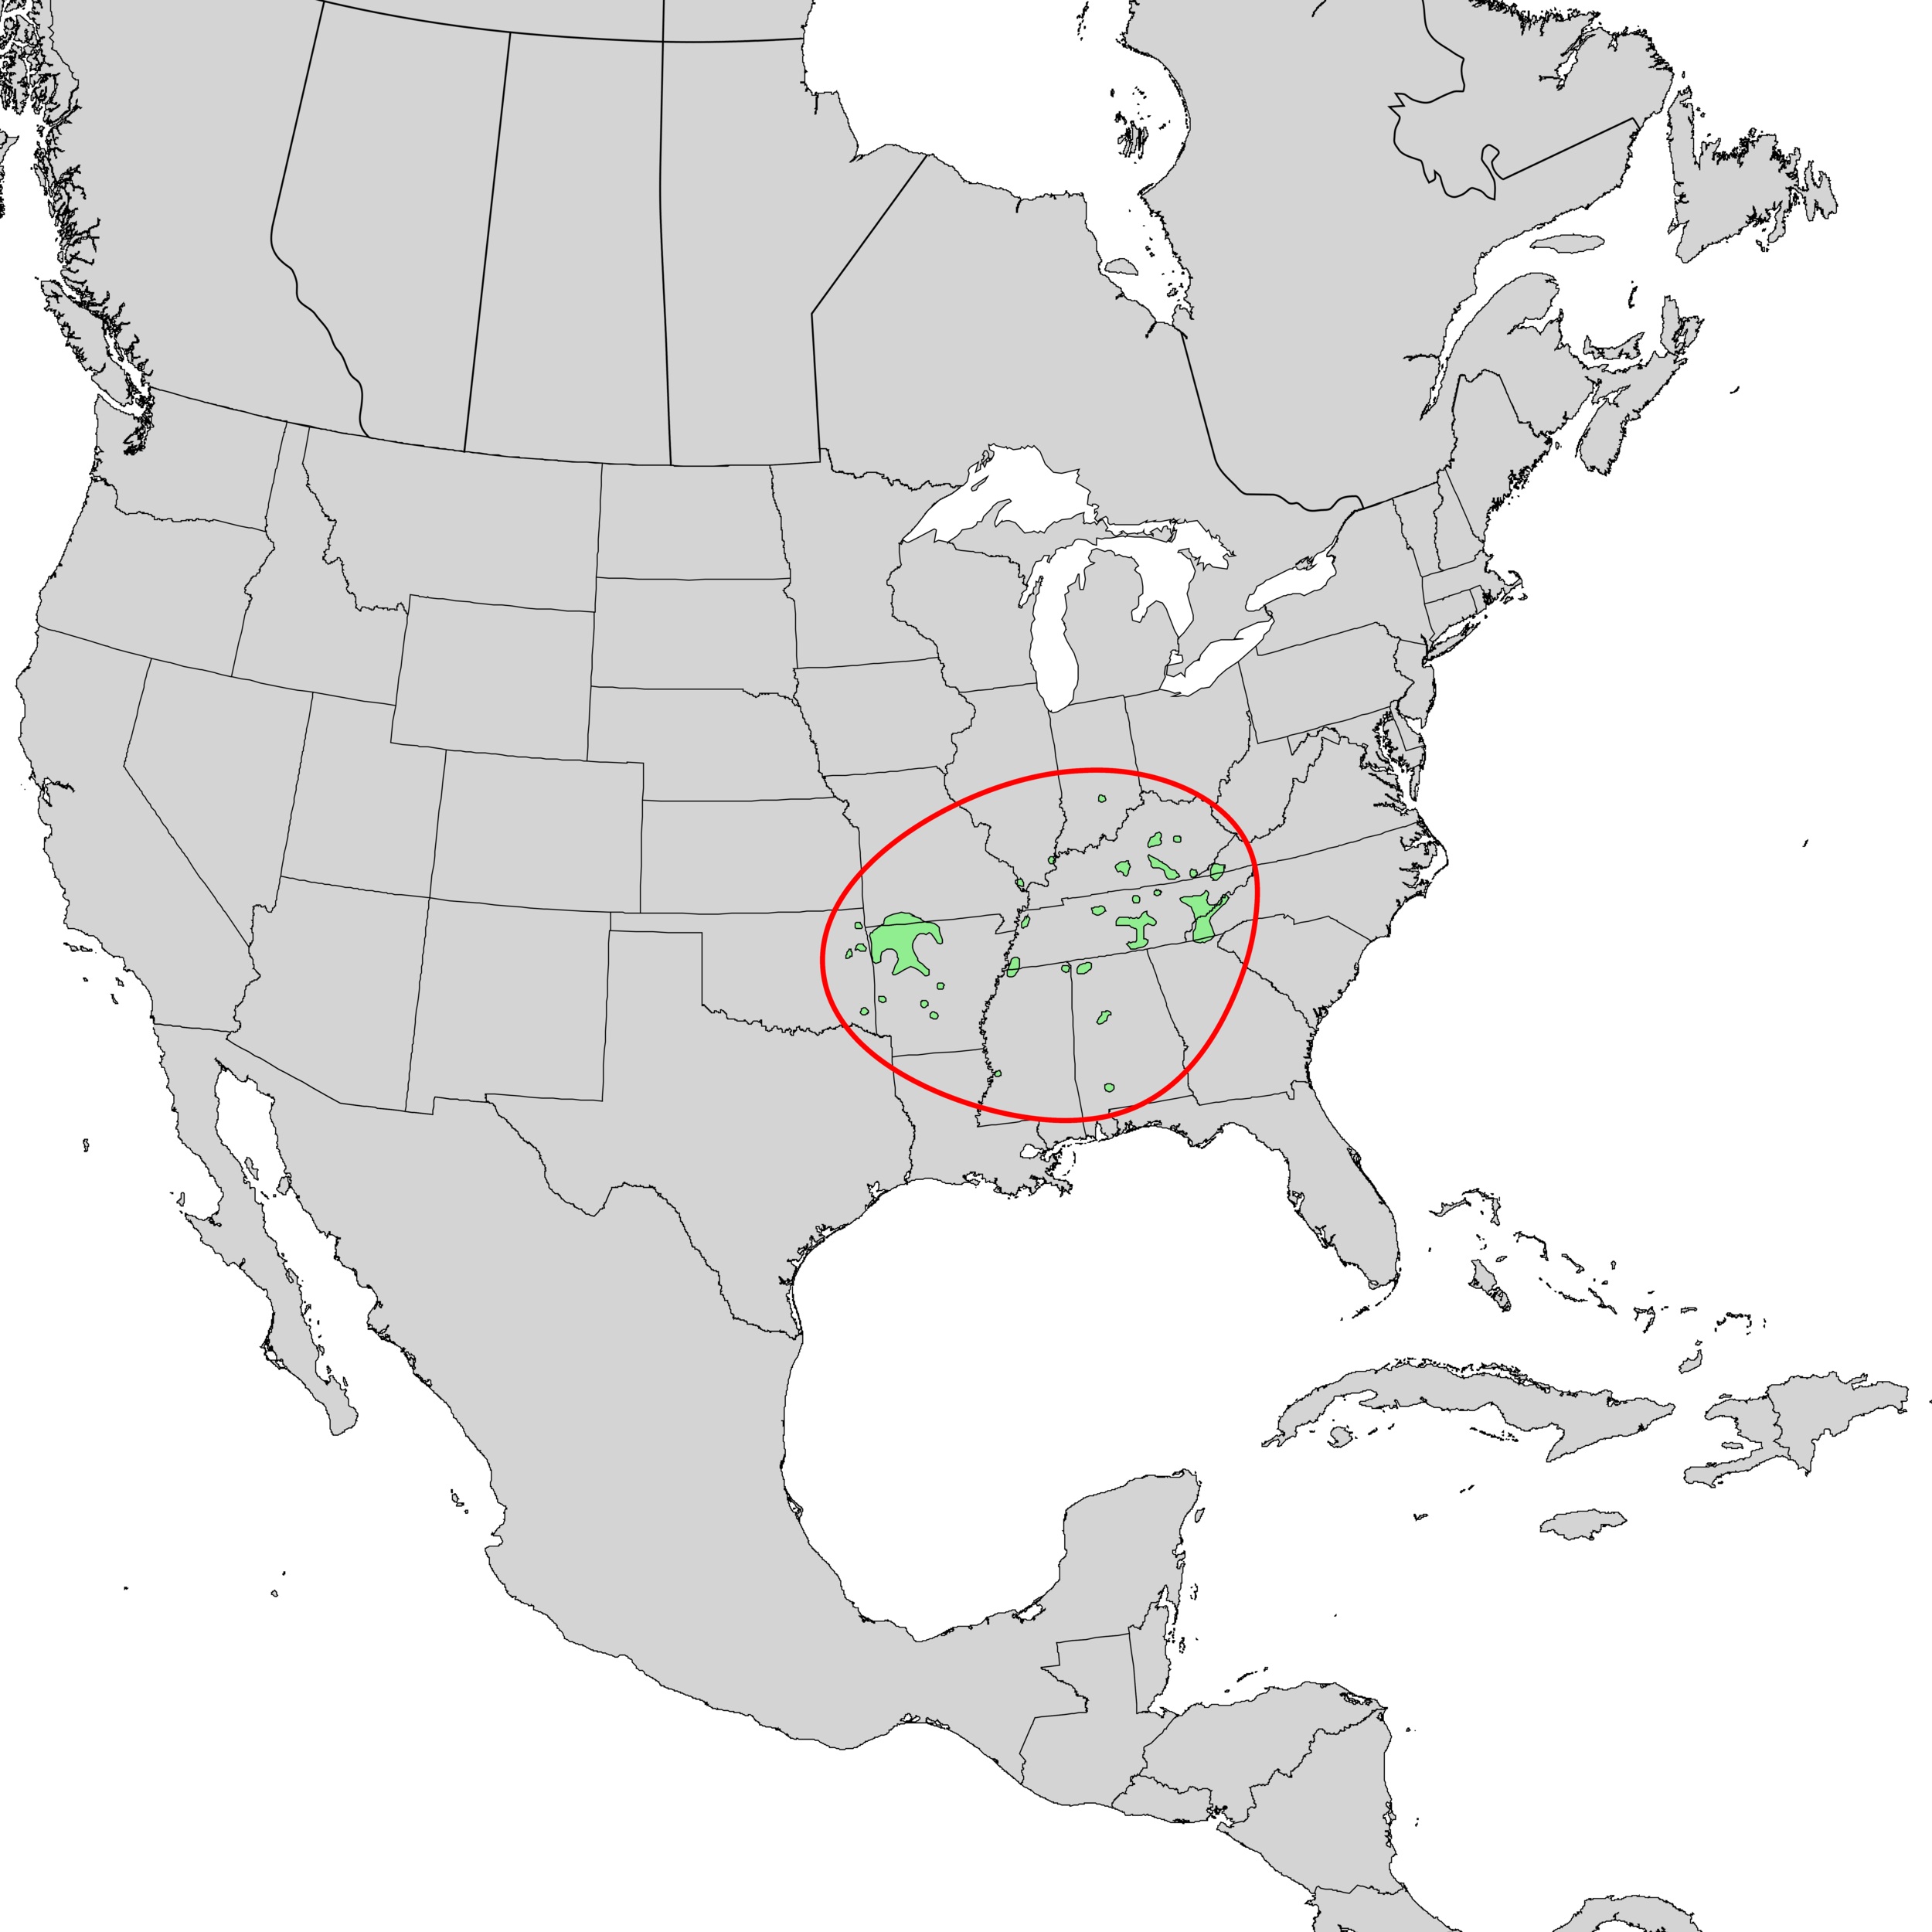 Provenance of American Yellowwood. Elbert L. Little, Jr., of the U.S. Department of Agriculture, Forest Service  -   USGS Geosciences and Environmental Change Science Center: Digital Representations of Tree Species Range Maps from: Elbert L. Little, Jr. (1977), Atlas of United States trees, Vol. 4 , minor Eastern hardwoods : U.S. Department of Agriculture Miscellaneous Publication 1342, 17 p., 230 maps.